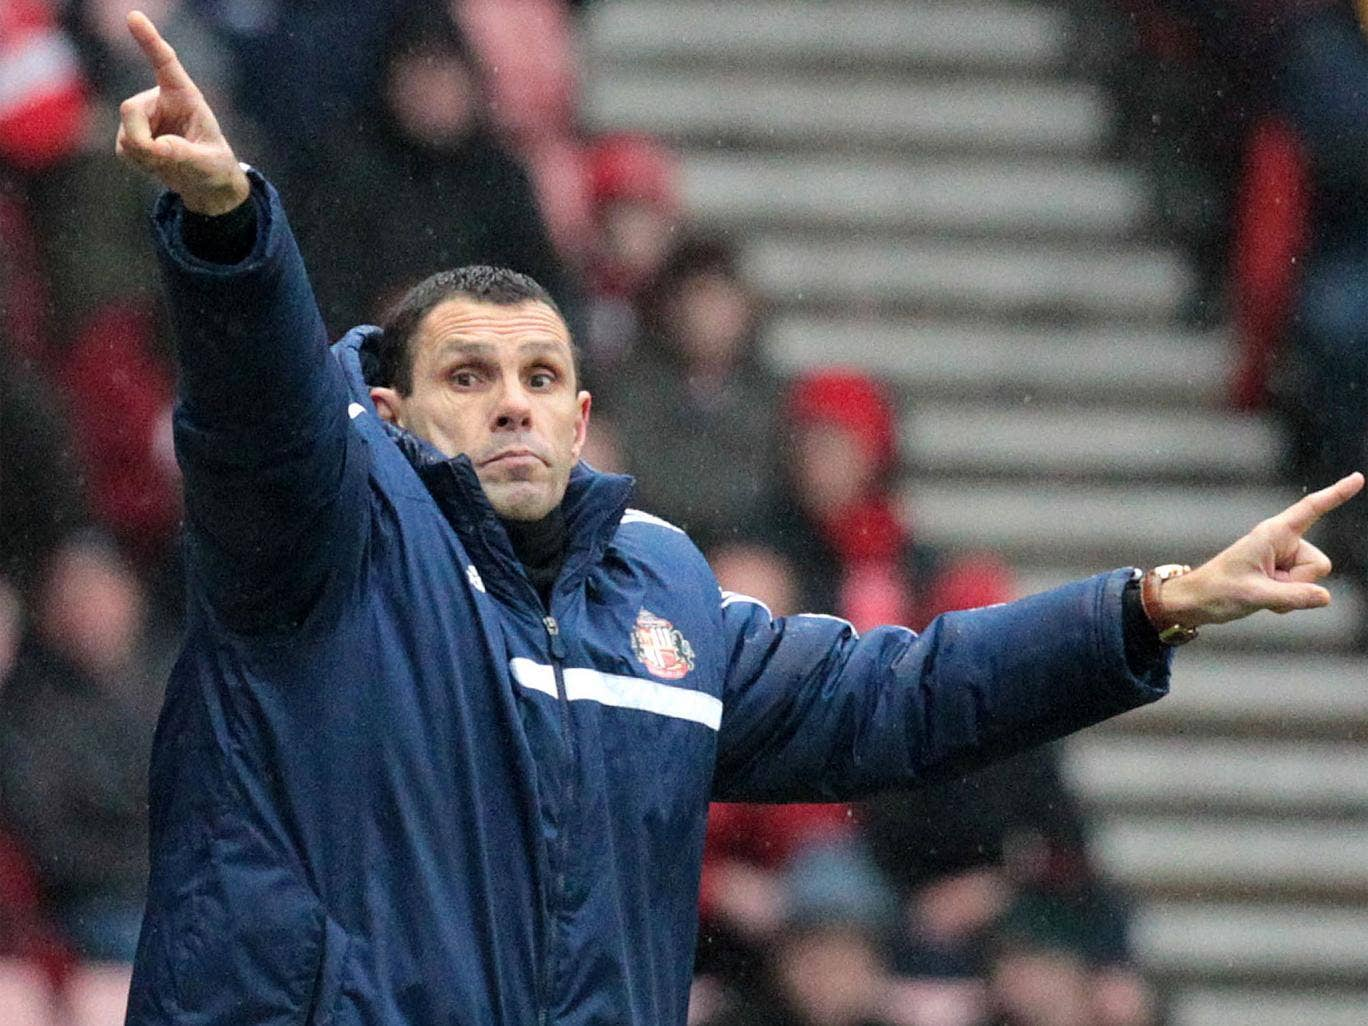 Gus Poyet gestures during last weekend's 2-2 draw with Southampton